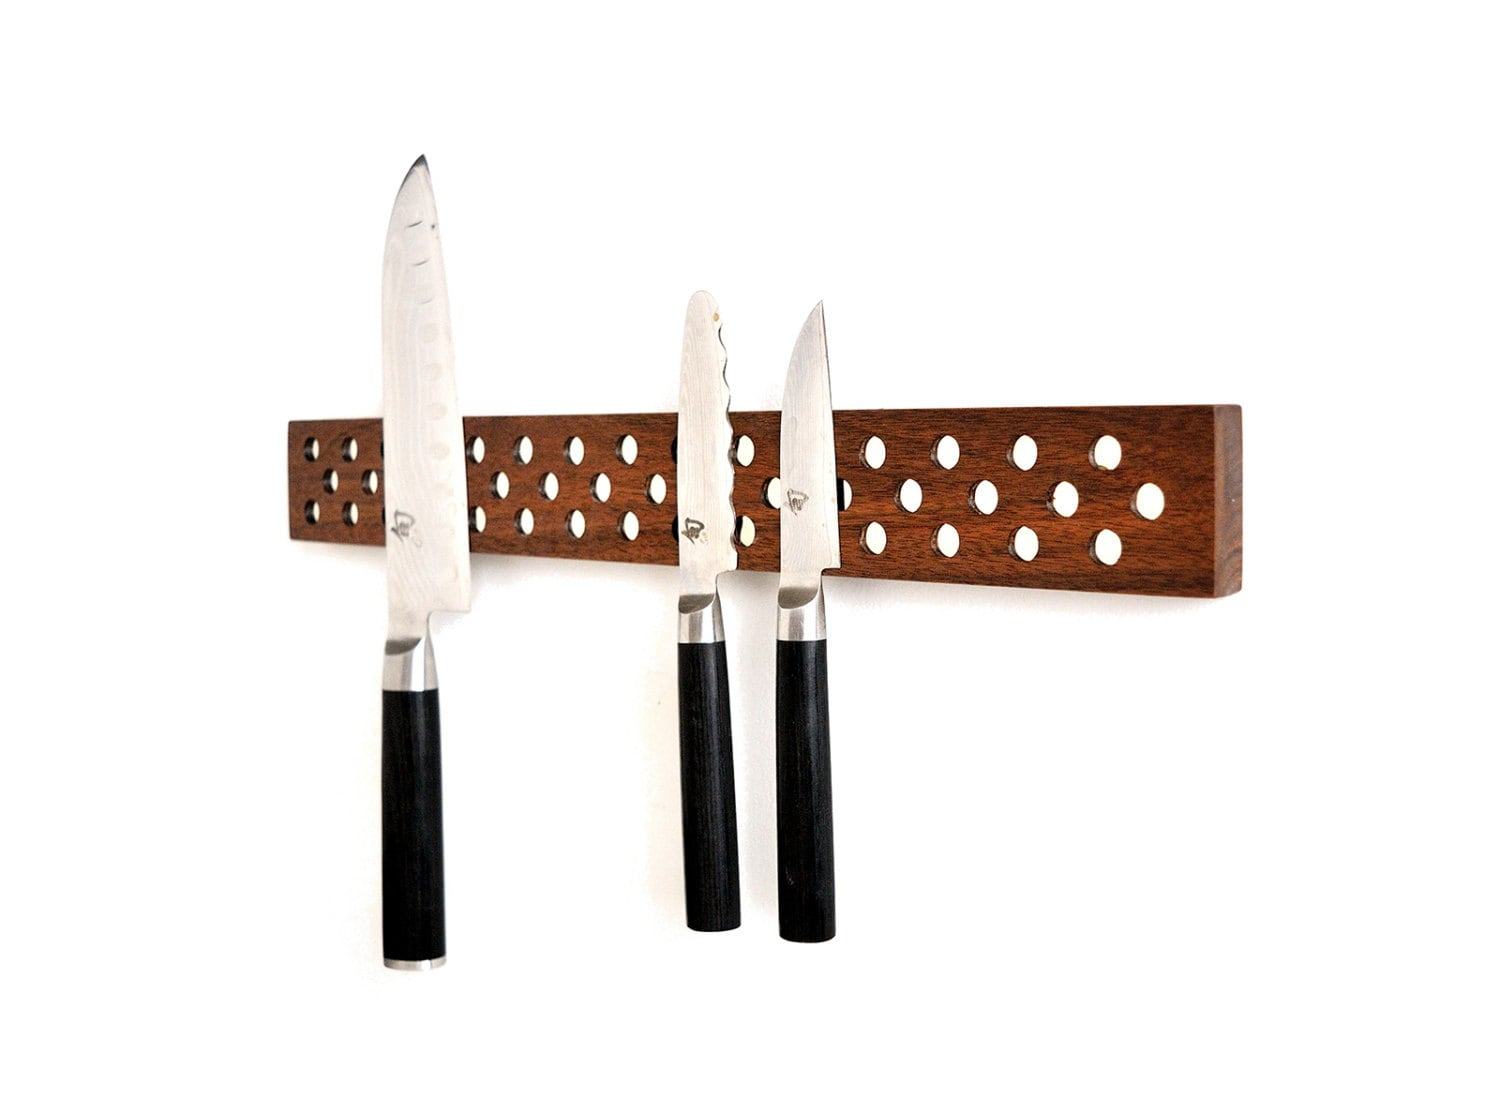 contemporary danish design inspired magnetic knife bar in walnut rh jonathanalden com